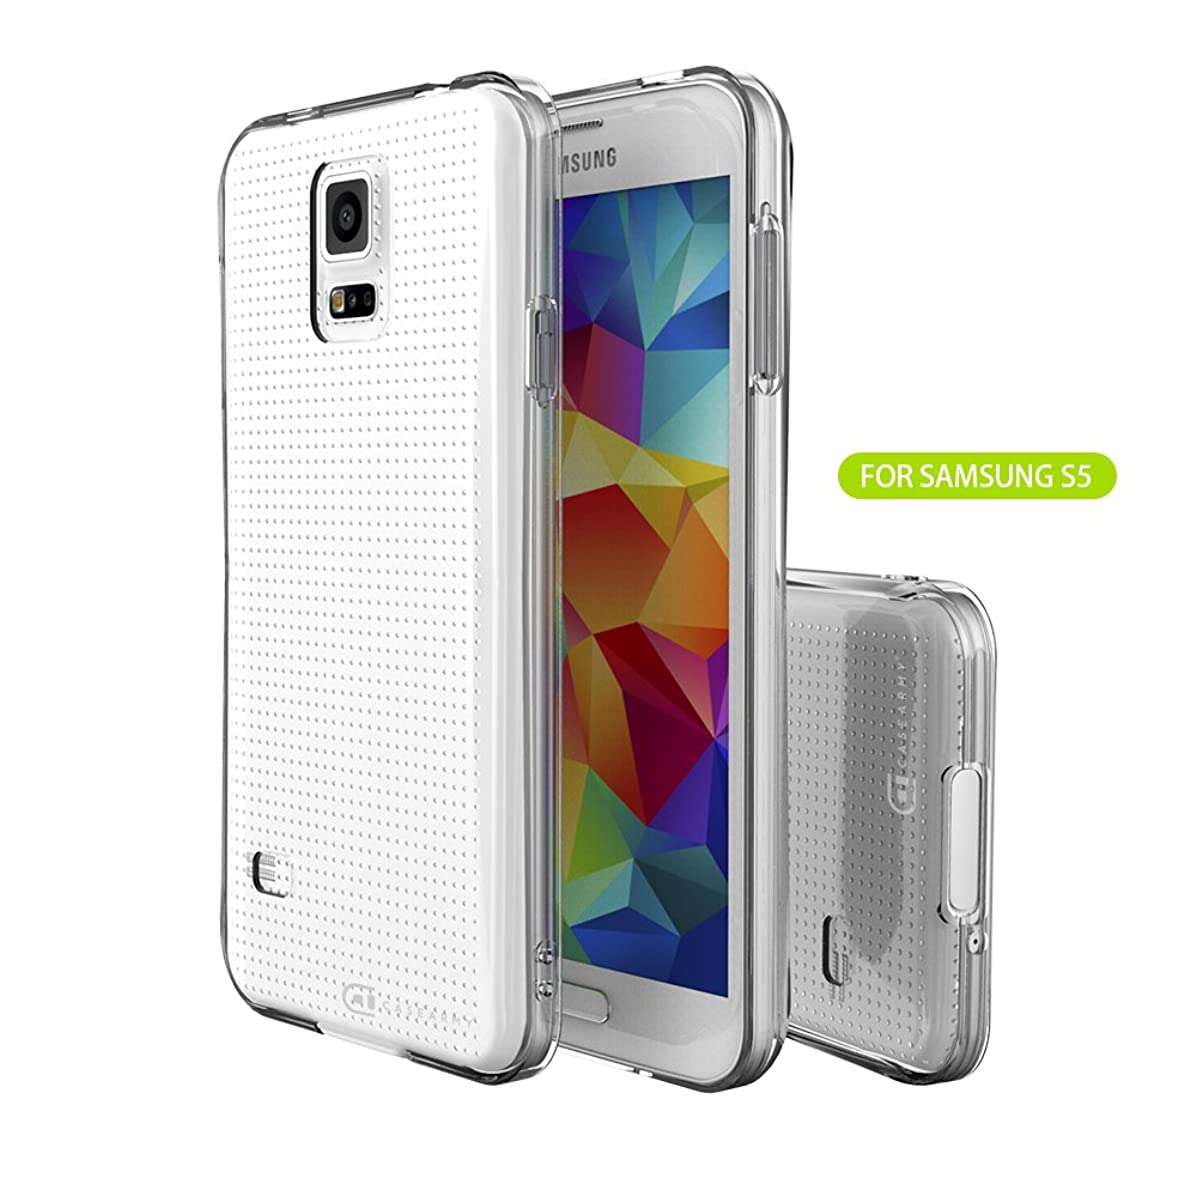 Case Army Galaxy S5 | S V | I9600 Clear Cover Case [Solid] Scratch-Resistant Clear Case for Samsung Galaxy S5 | S V | I9600 hard Shell back soft sides Silicone Crystal Clear Cover with TPU Bumper